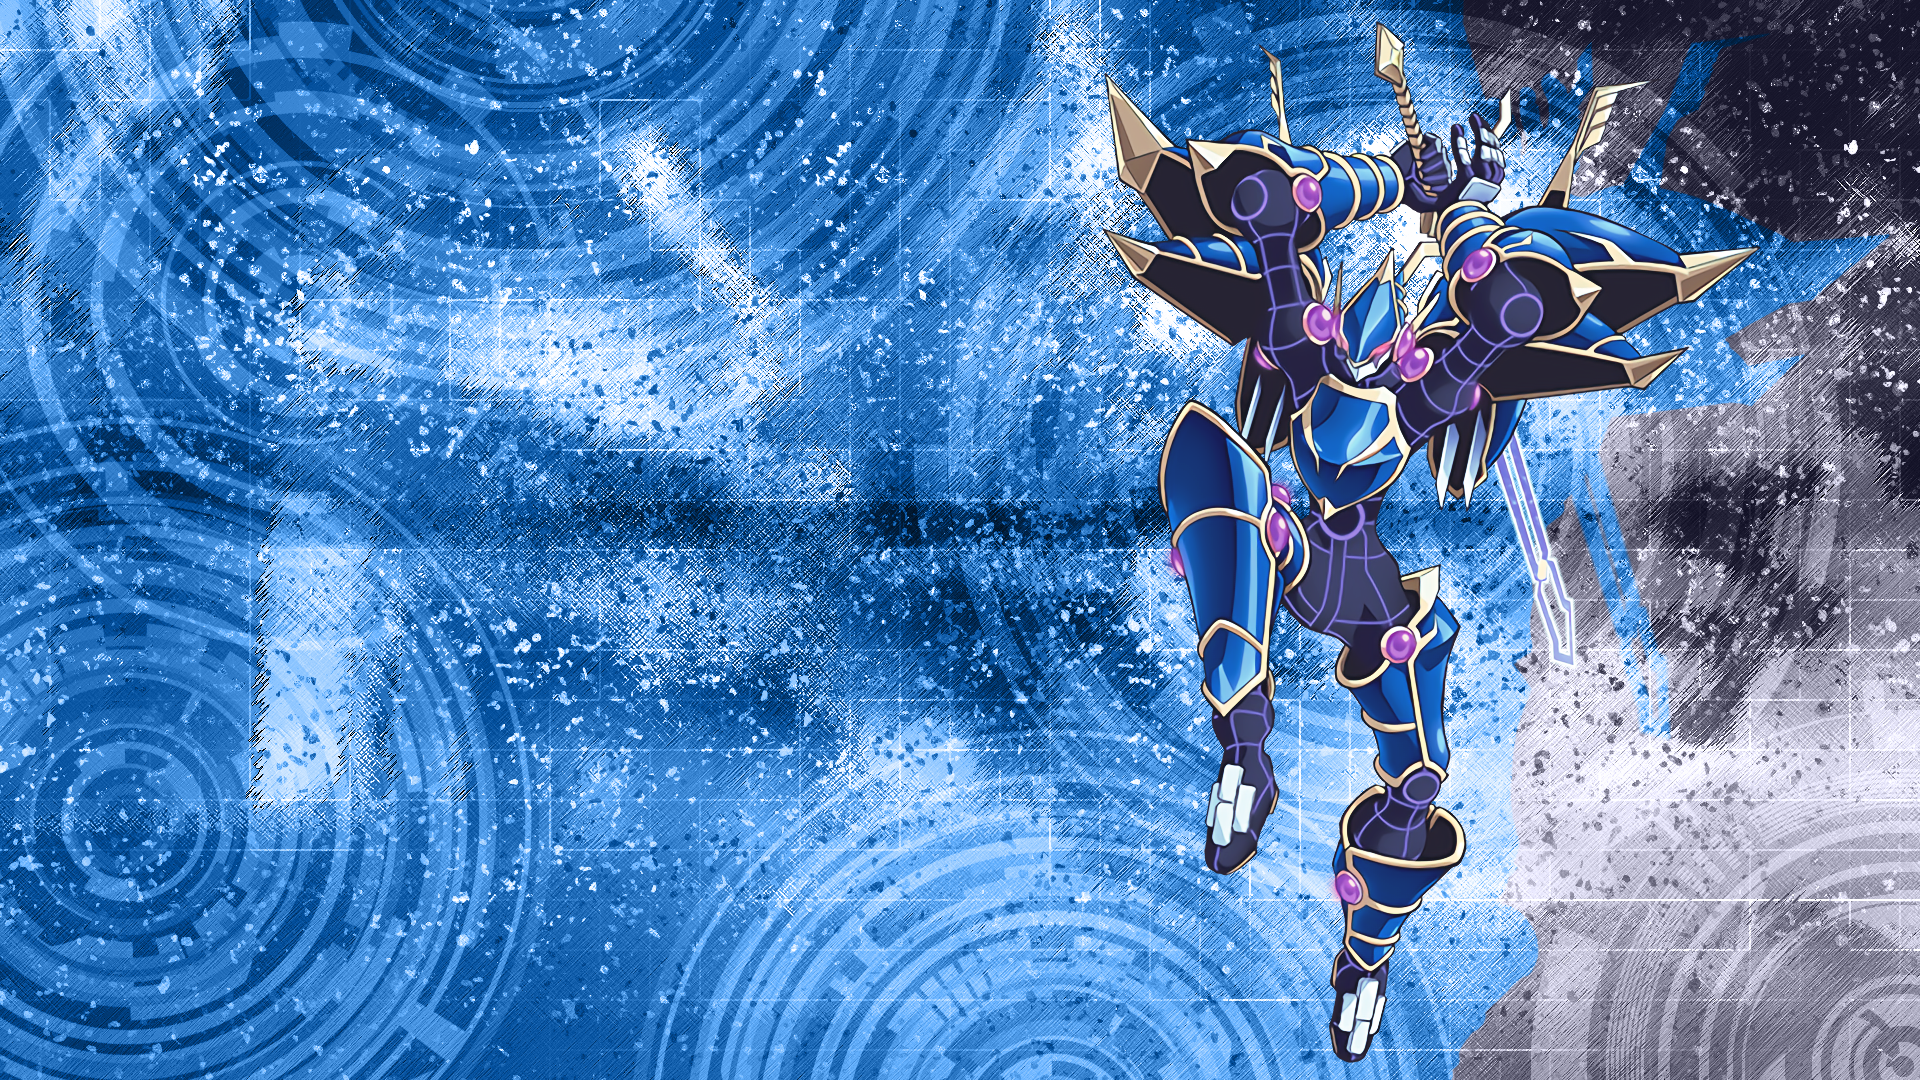 Yugioh Vrains Wallpaper Posted By Ethan Peltier